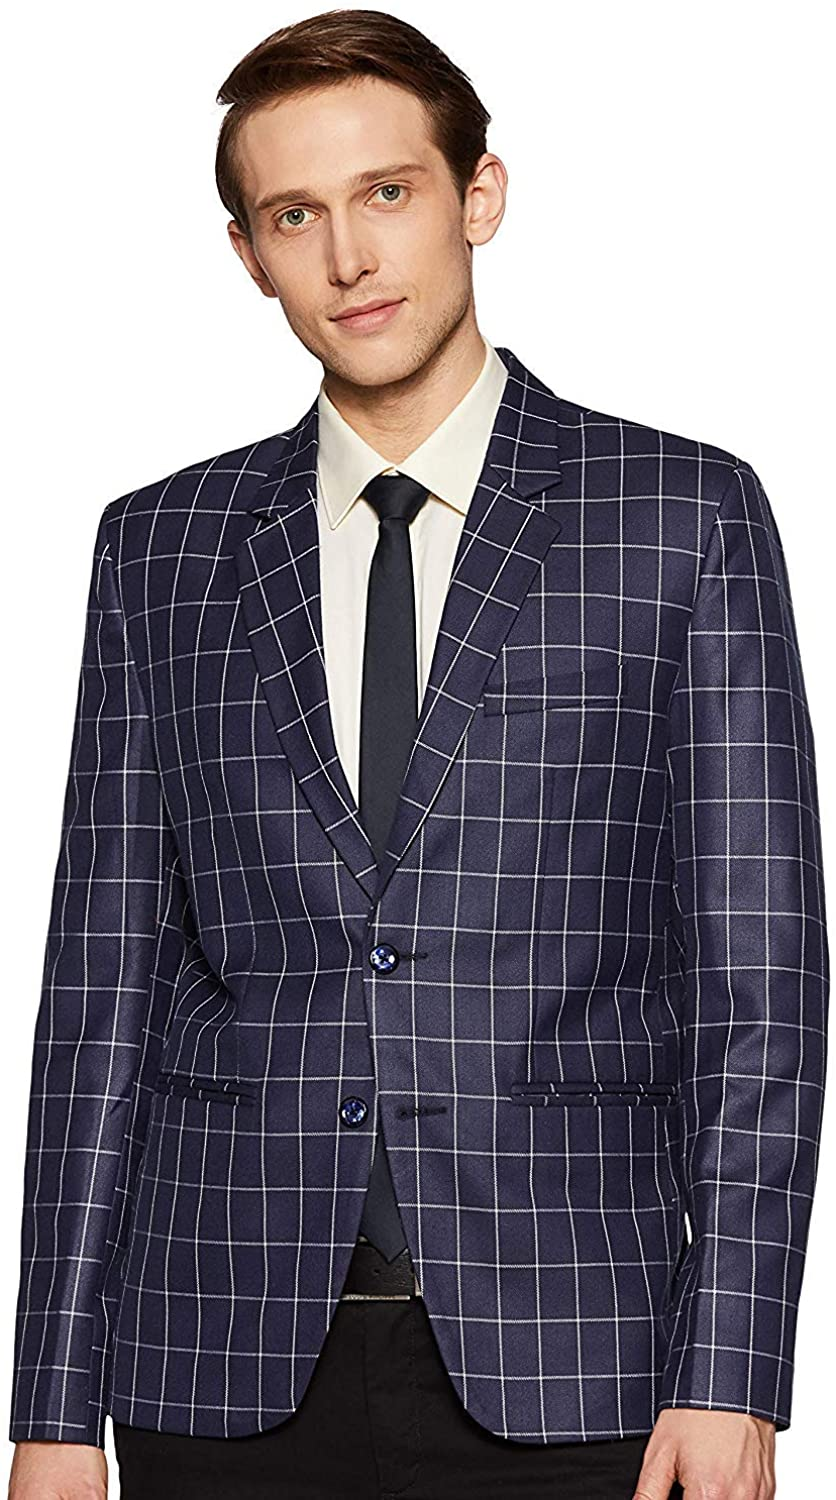 LUXRIO Men's Casual Suit Blazer Jackets Lightweight Sports Coats Tailored Fit Check Blazer for Men Stylish Party Wear